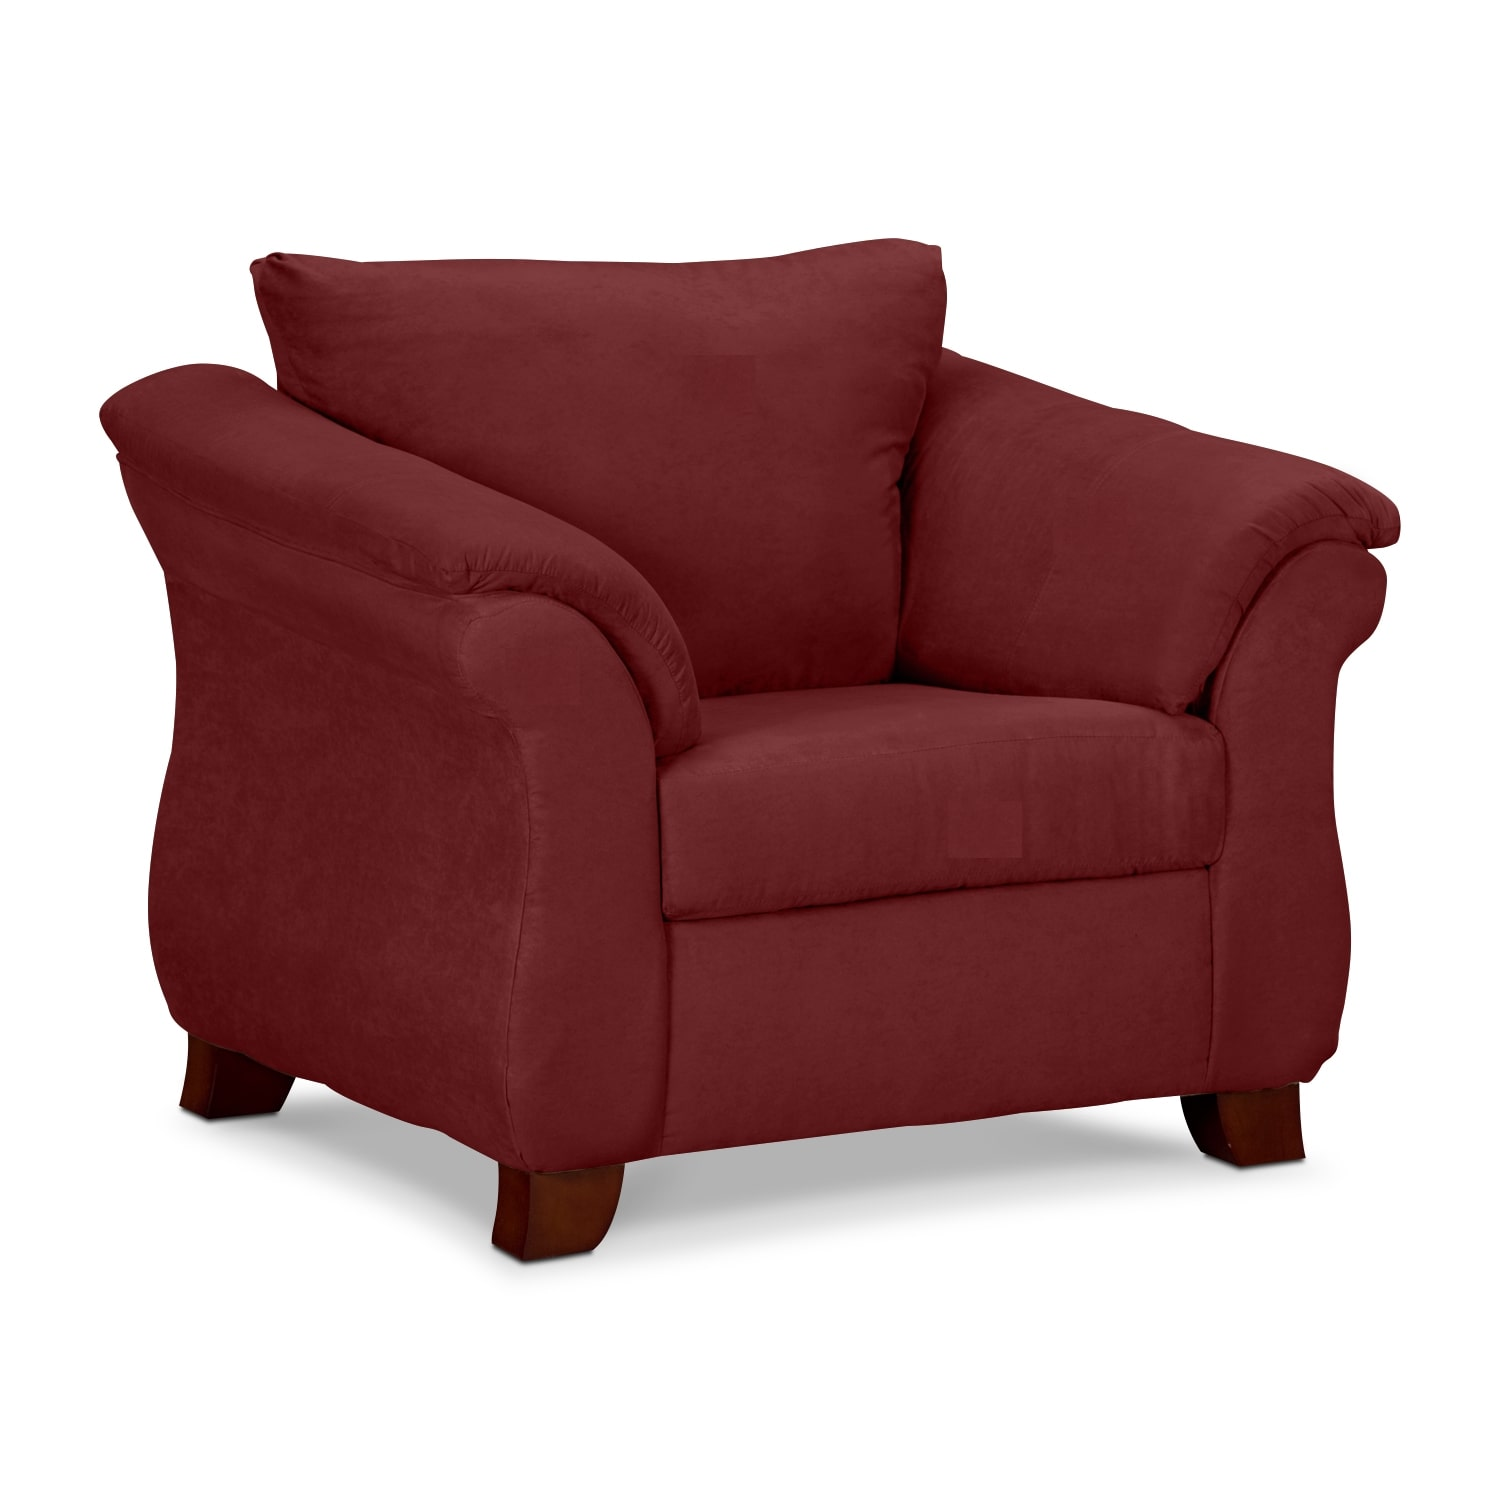 Adrian Red Chair Value City Furniture